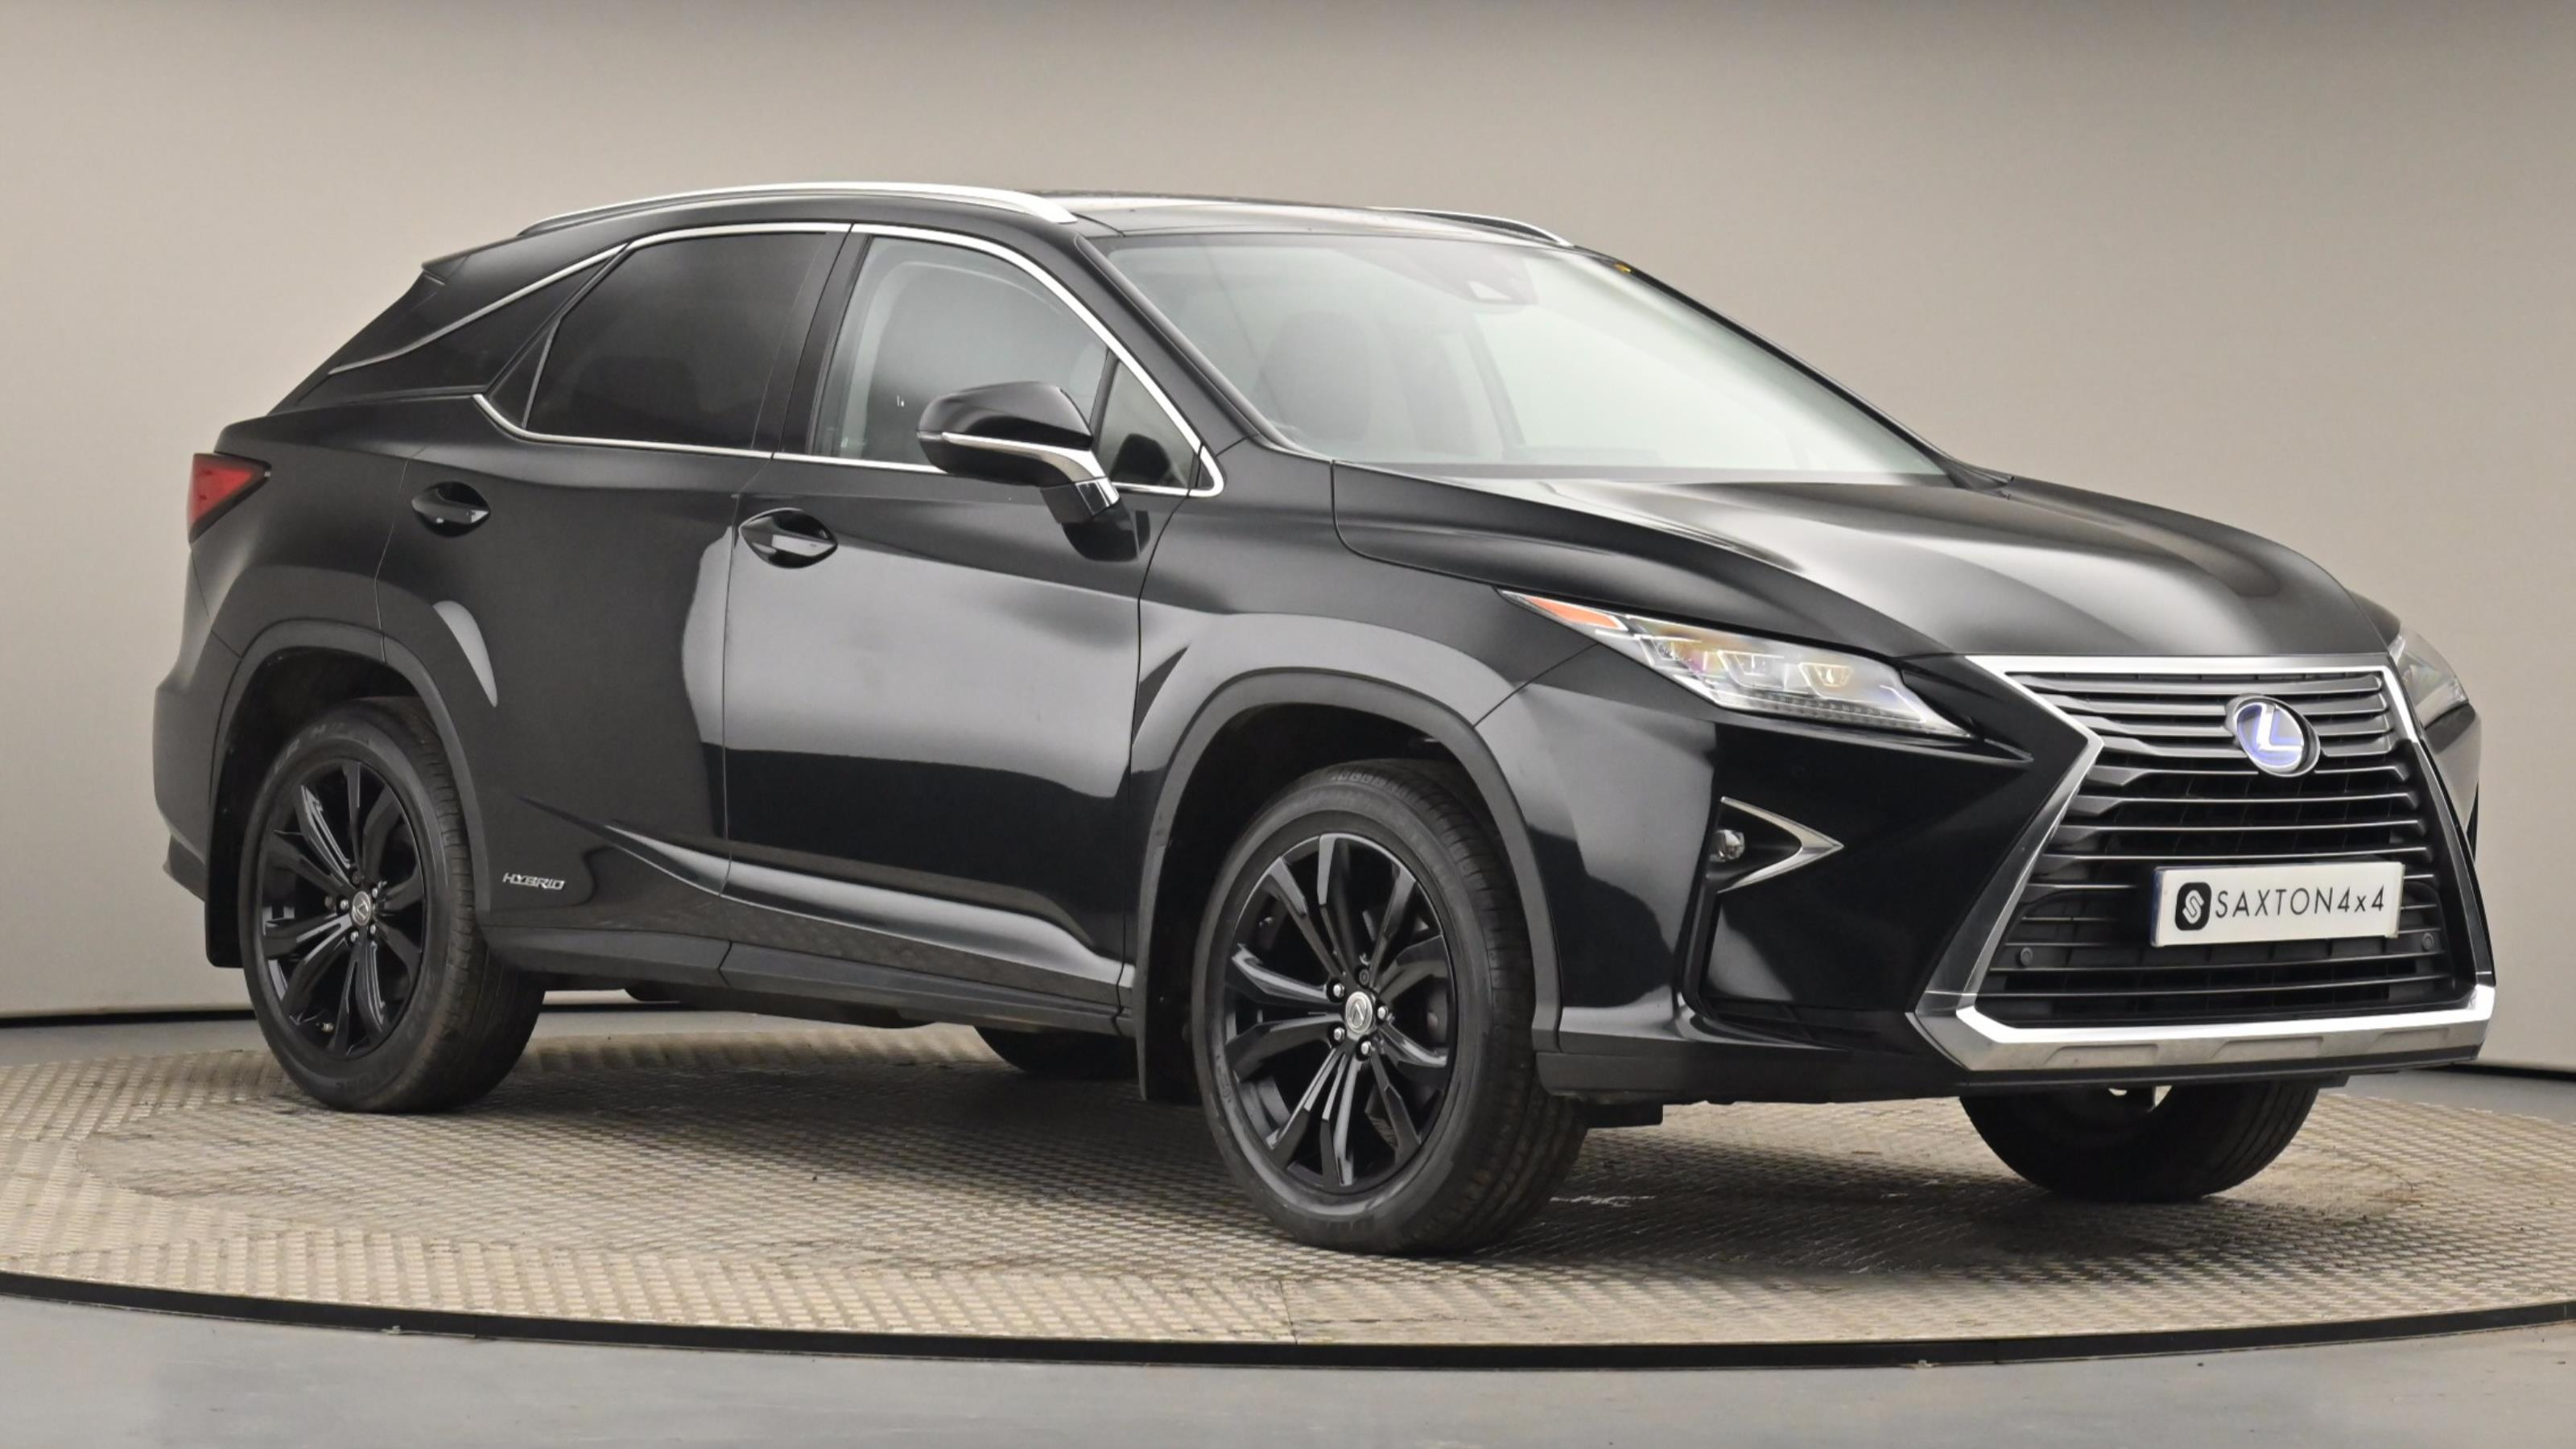 Used 2016 Lexus RX 450h 3.5 Luxury 5dr CVT [Pan roof] BLACK at Saxton4x4